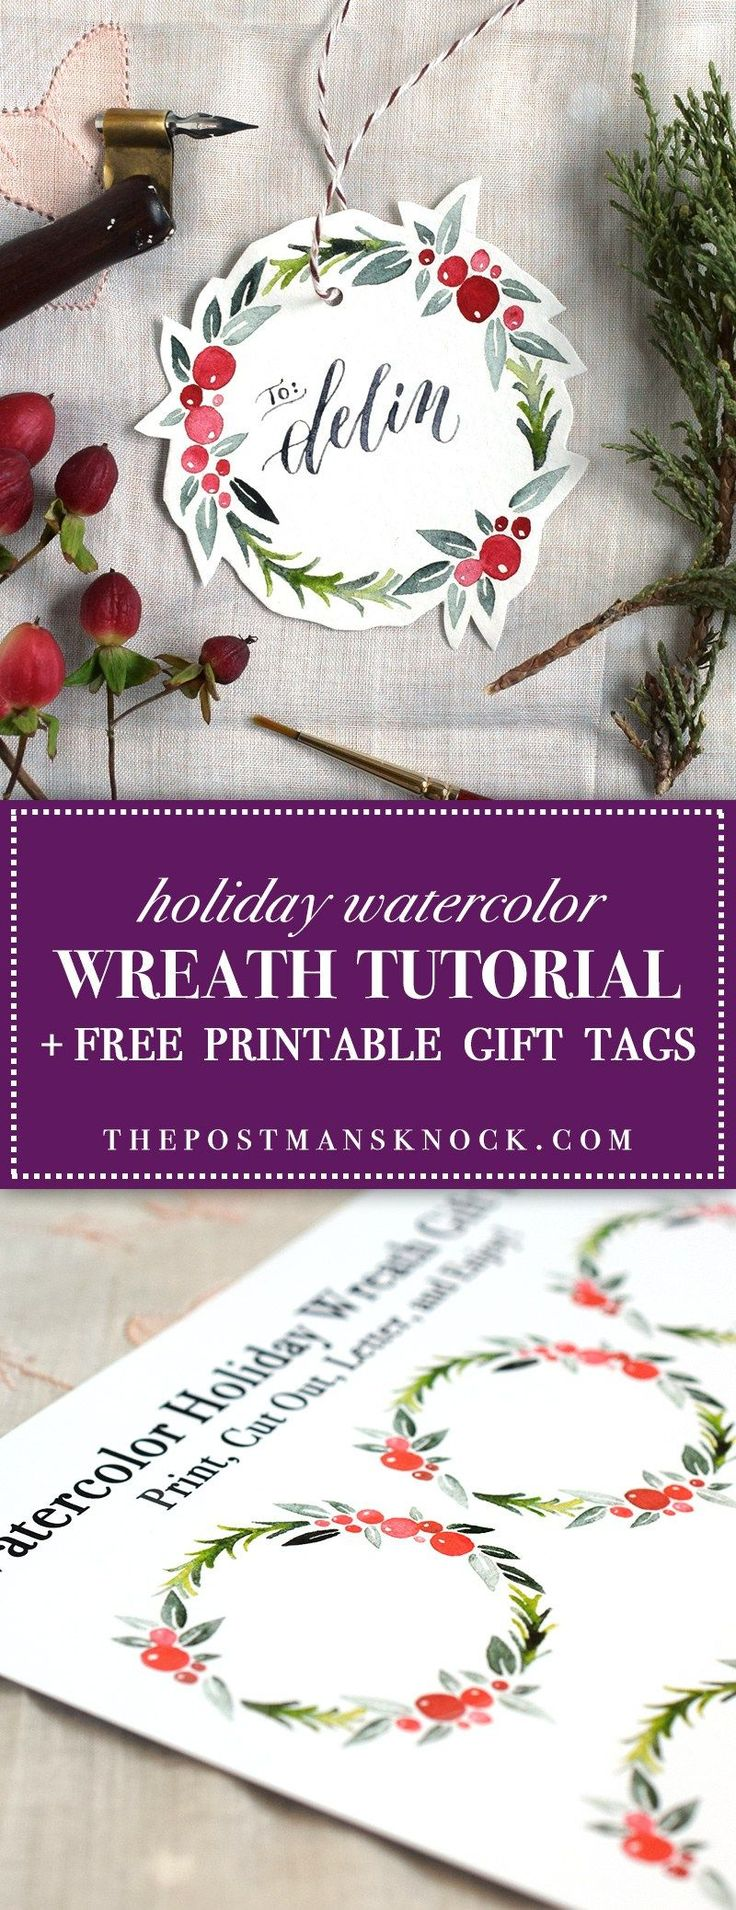 Watercolor Holiday Wreath Tutorial + Free Printable | The Postman's Knock TPK (HL, wc2)